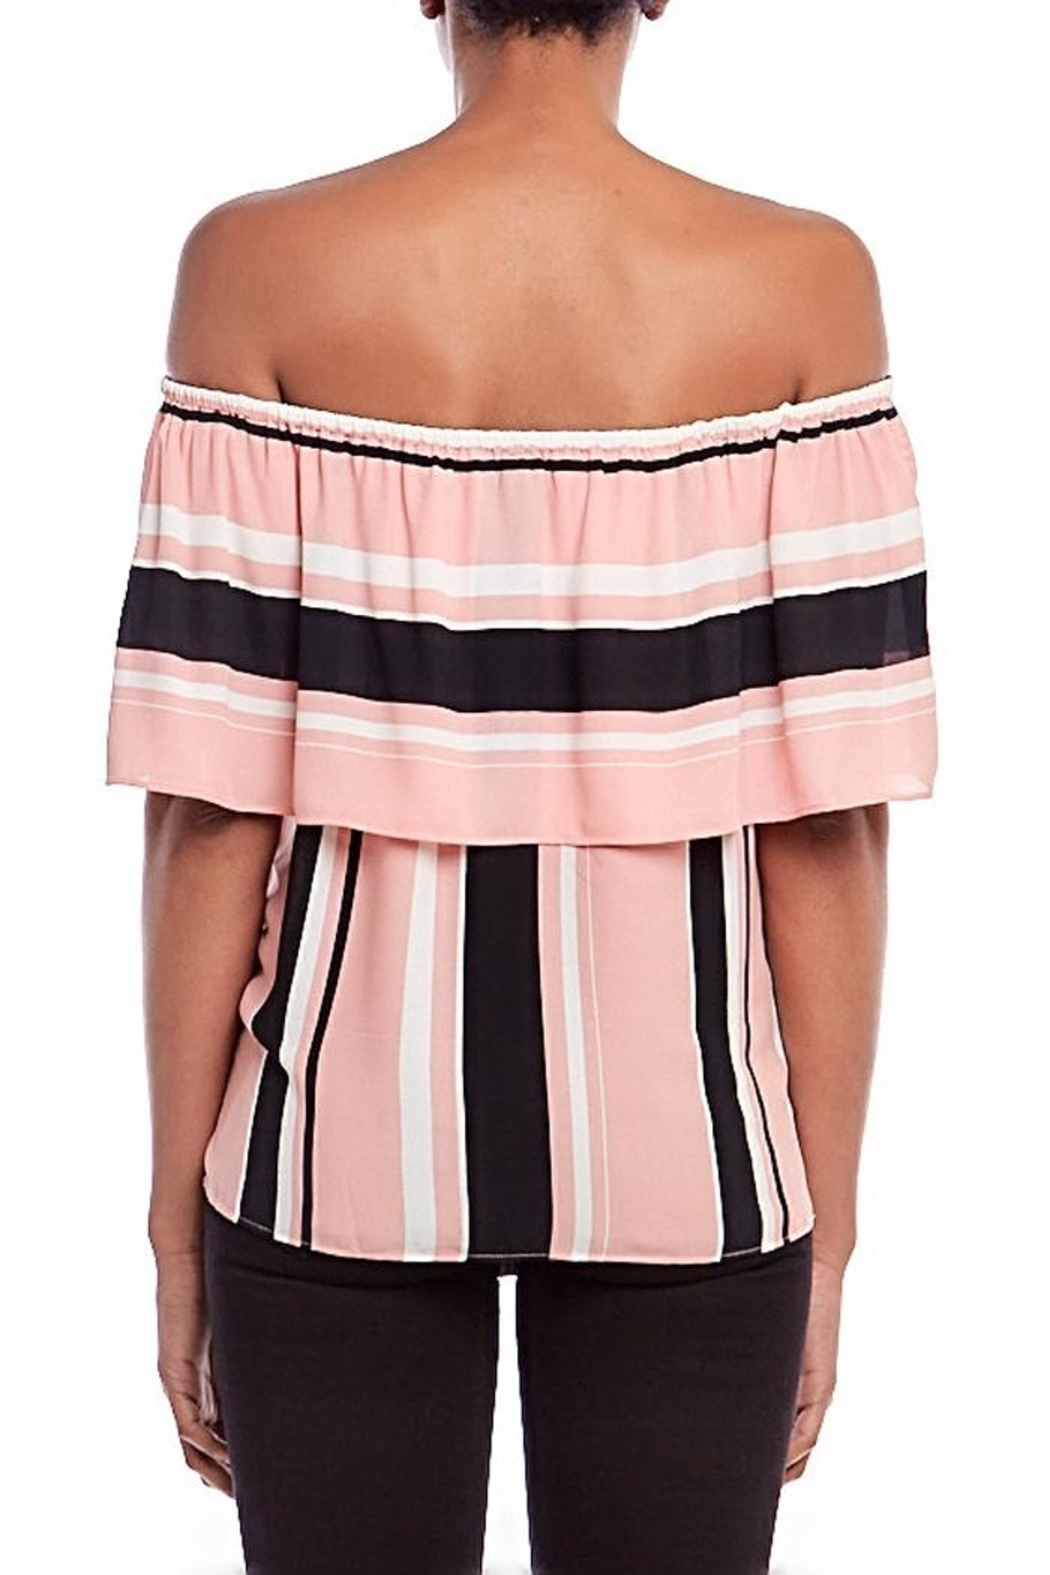 Asher by Fab'rik Wesley Top Pink - Back Cropped Image